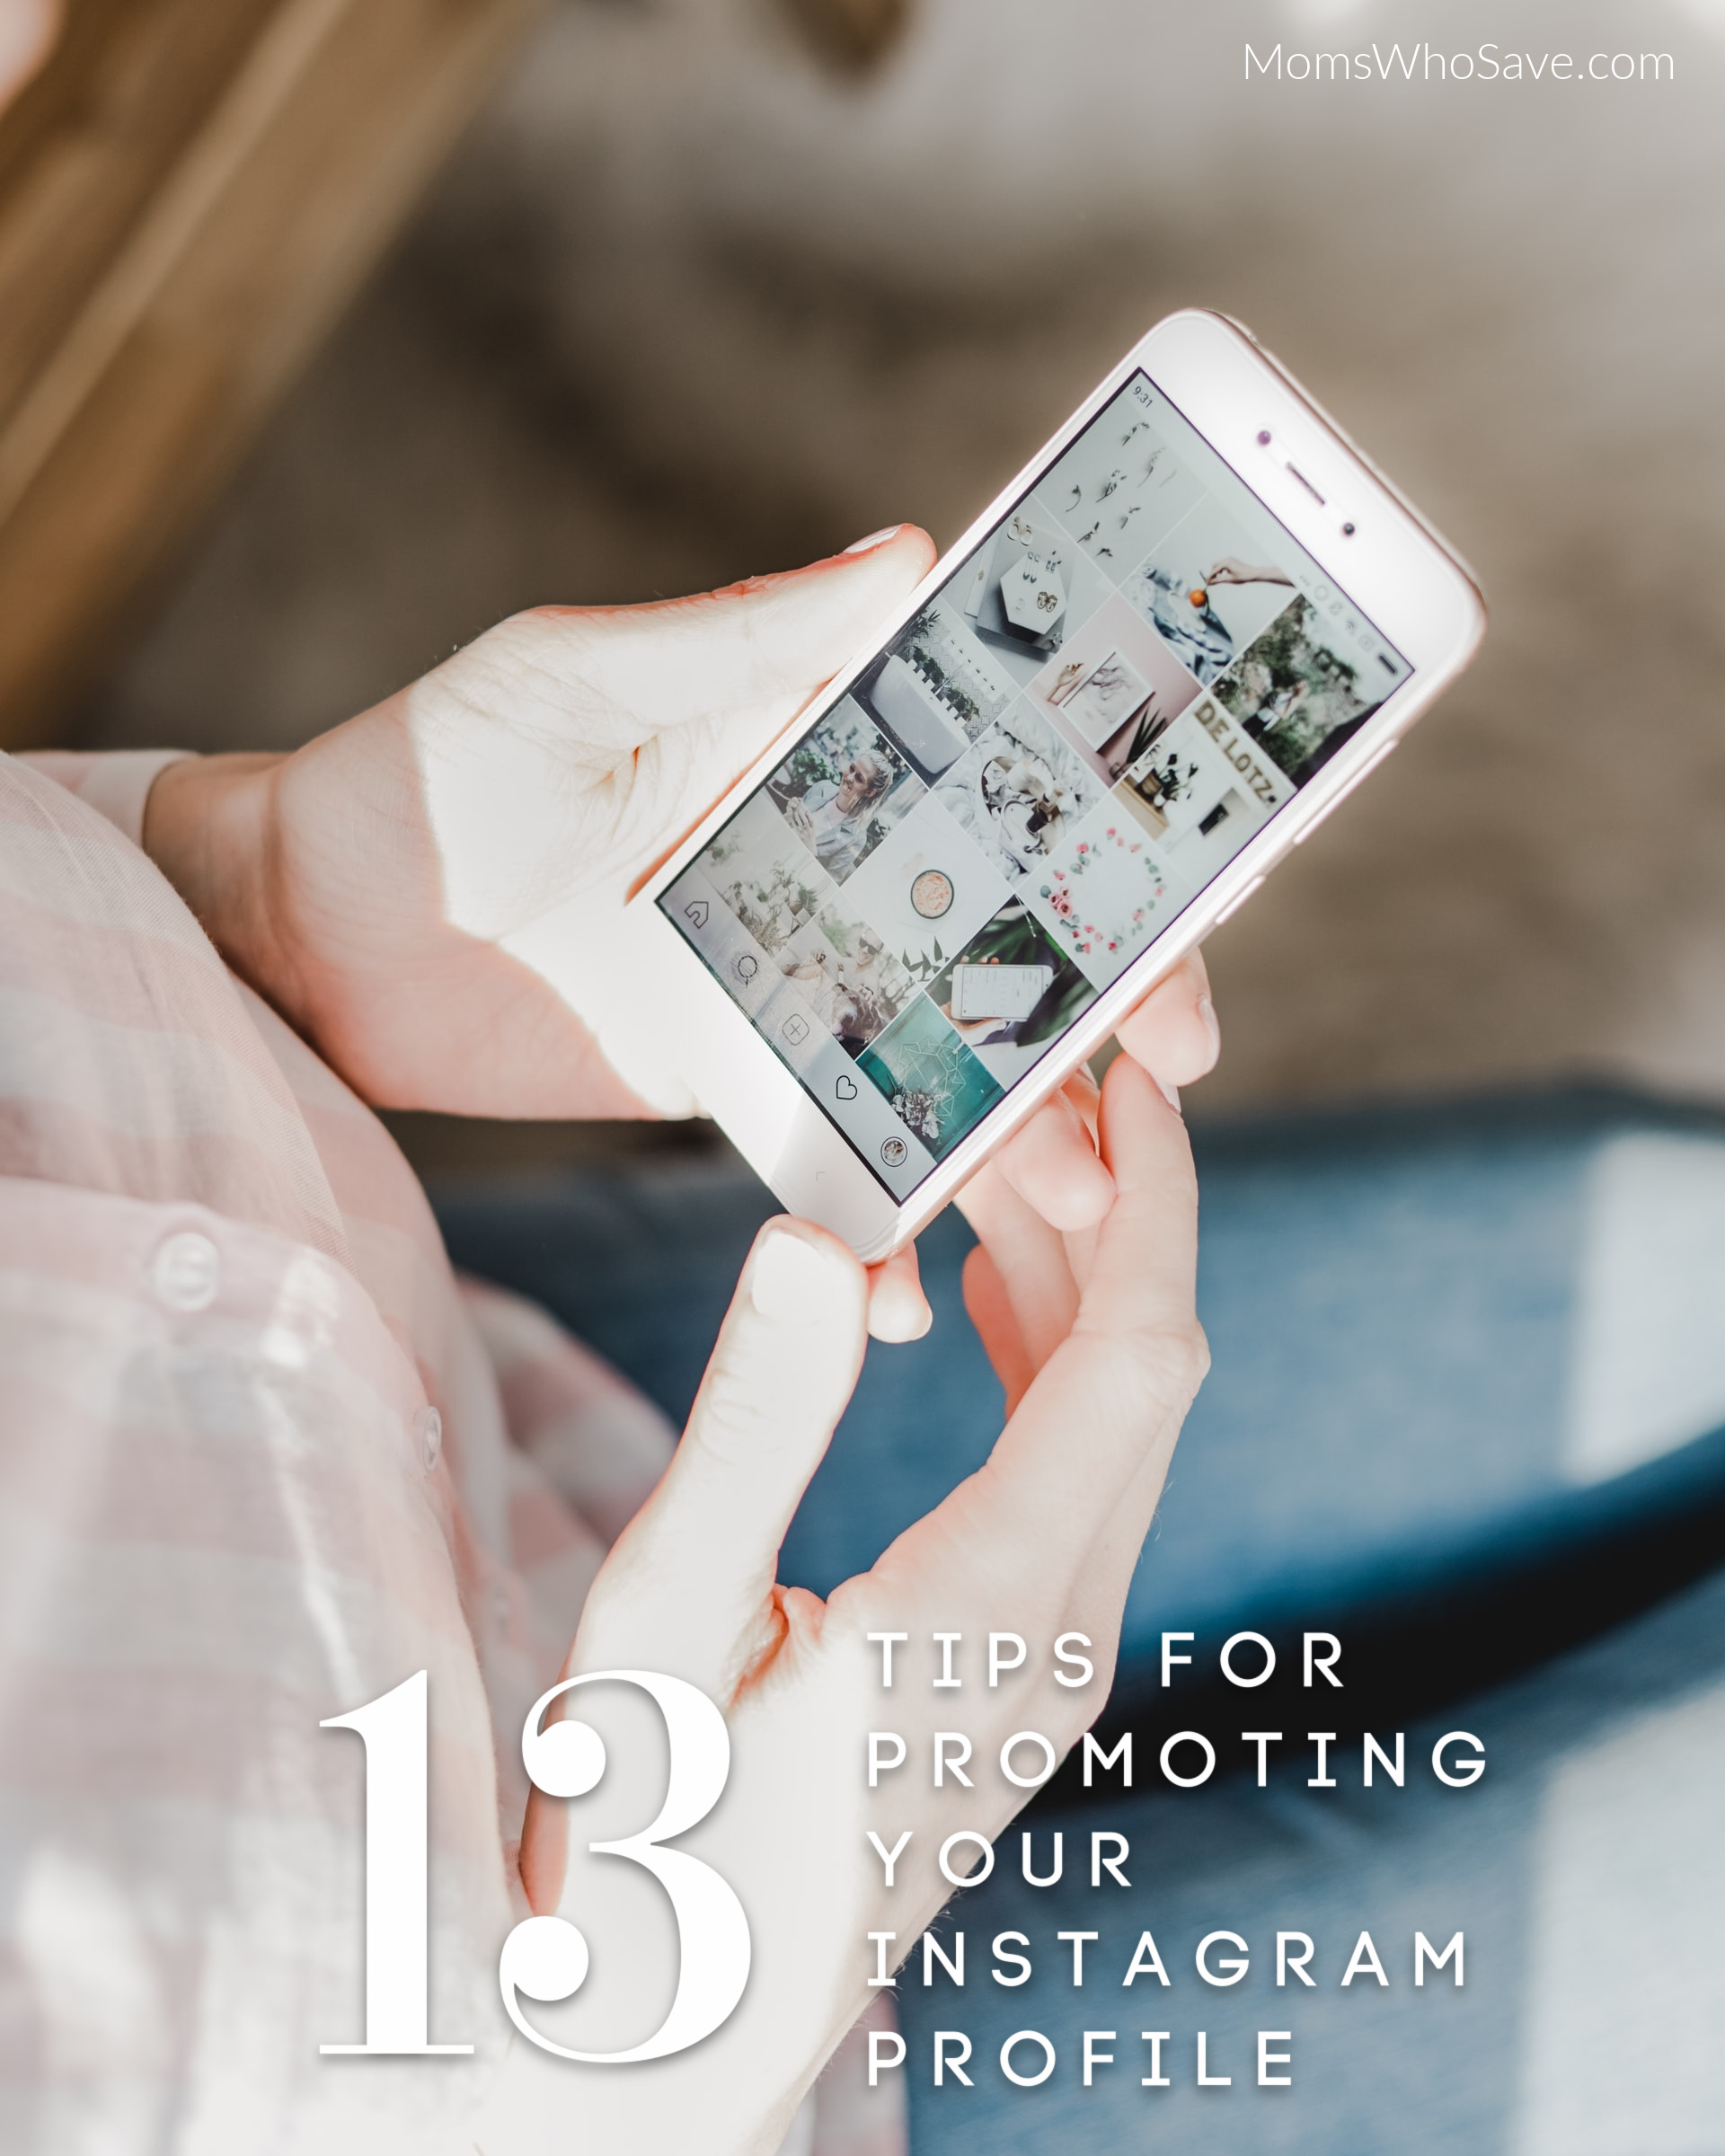 tips for promoting your instagram profile